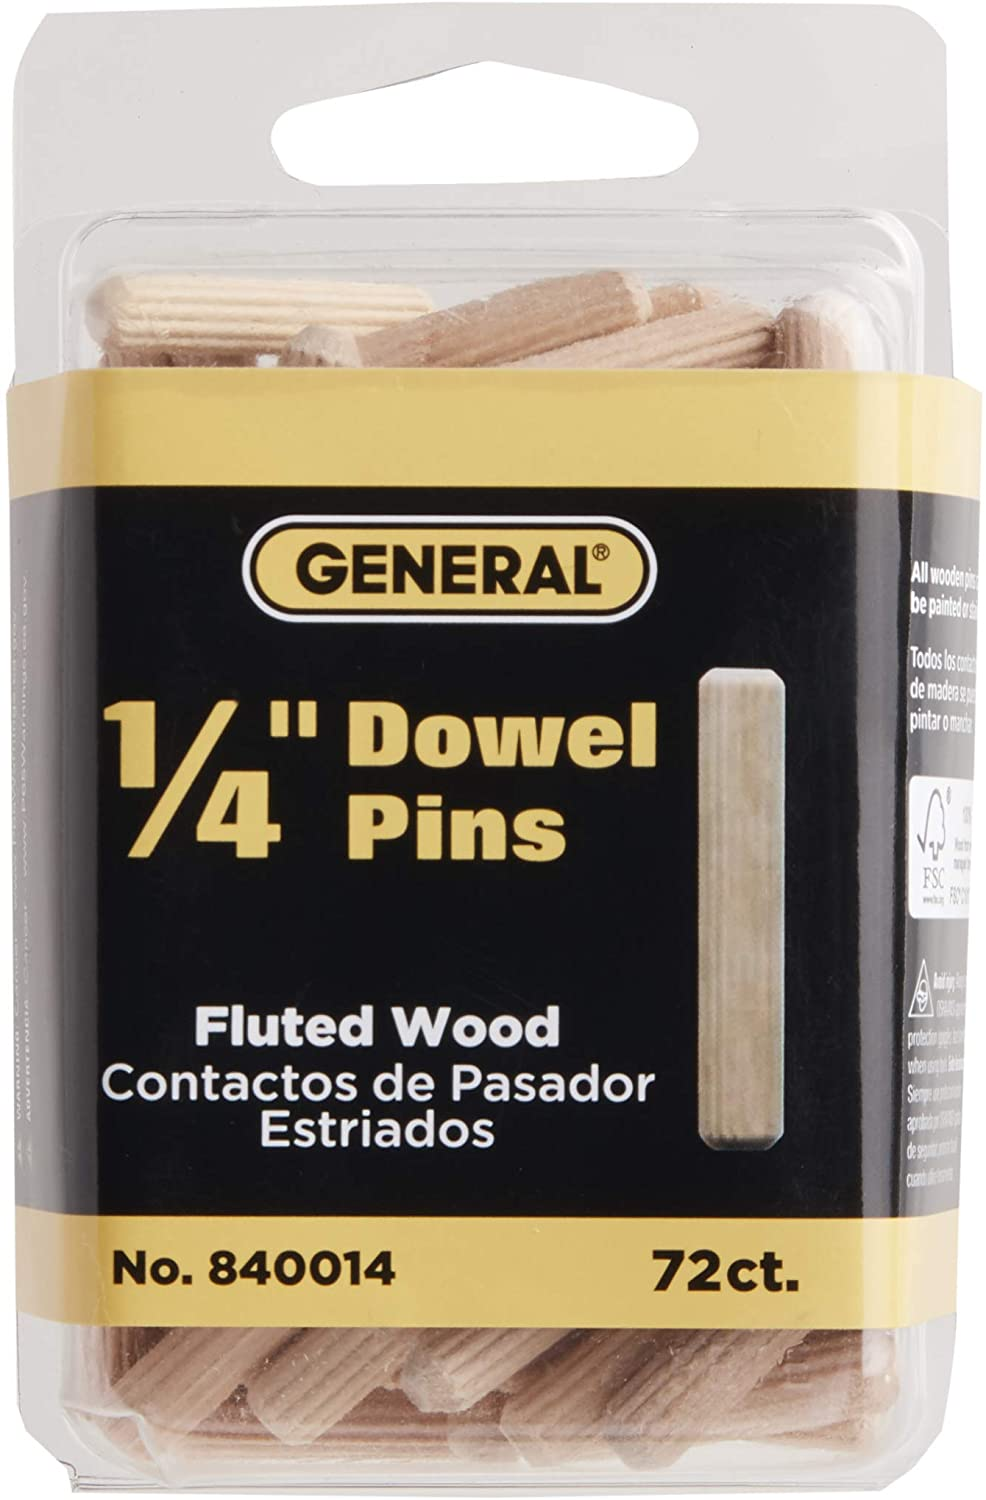 1//2 x 1-3//4 Wooden Dowel Pins 50, 1//2 X 1-3//4 Straight Fluted Wooden Dowel Pins Fluted Wooden Dowel Pins Fluted Dowel Pins Fluted Wood Dowel Pins Wood Dowel Pins for Furniture